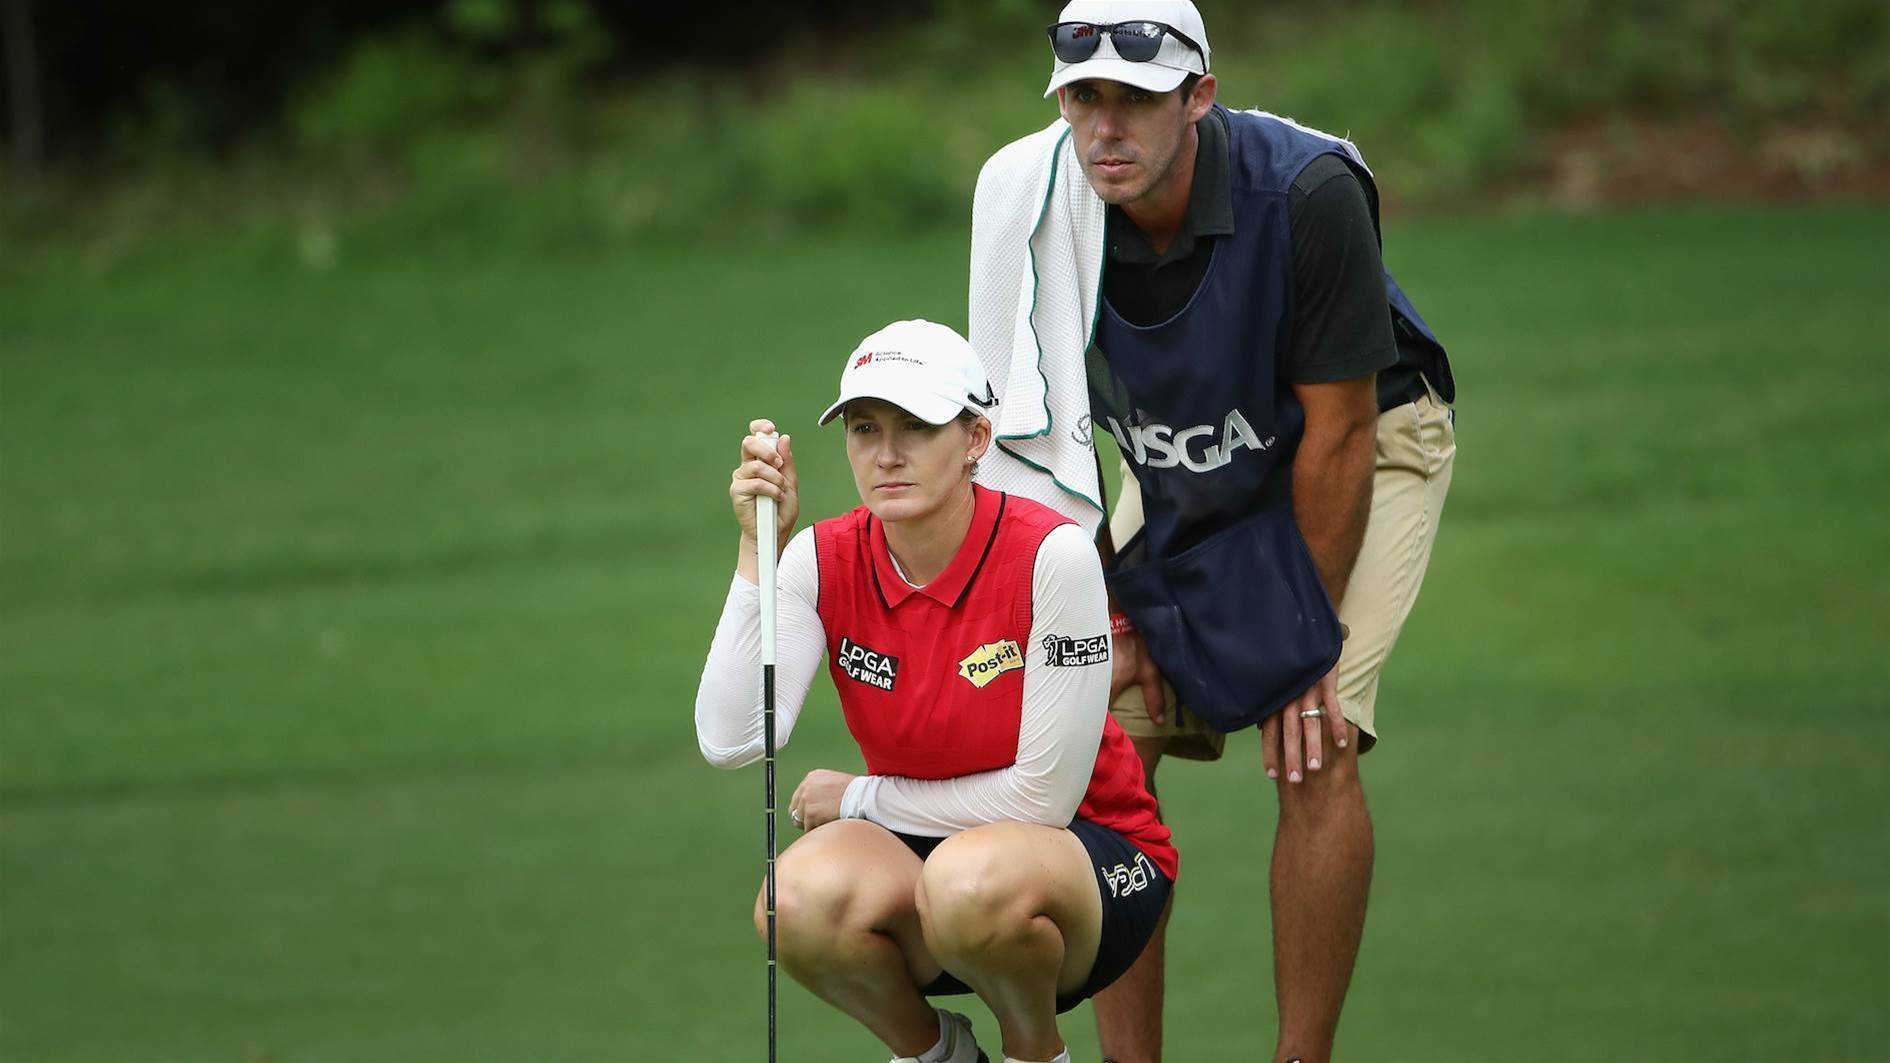 Smith's caddie knows her better than any